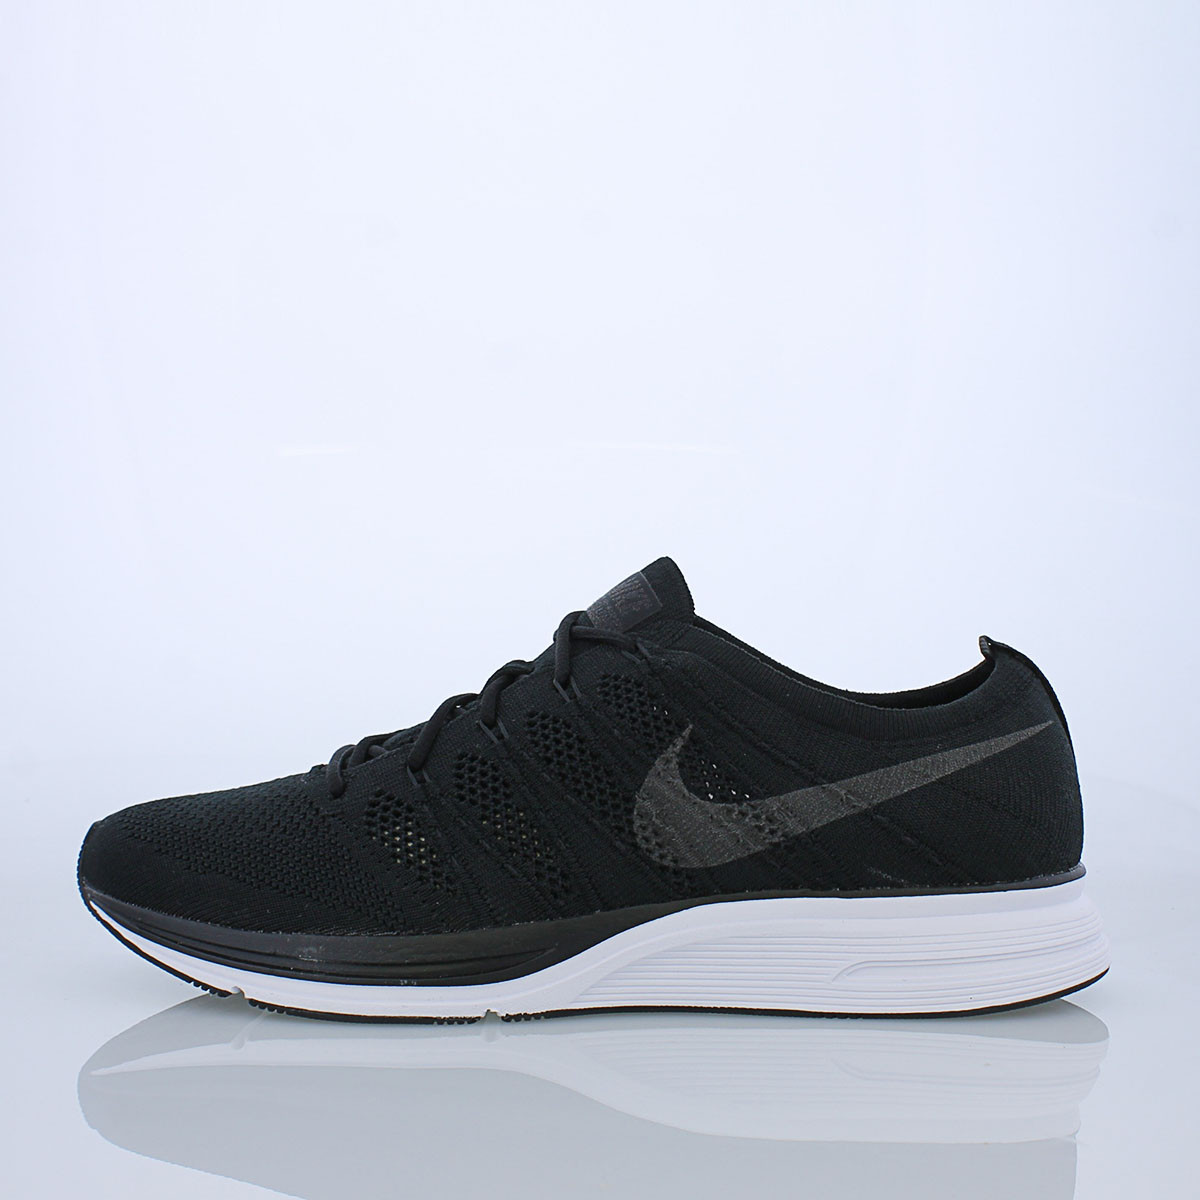 34f462da7cc36 Nike Flyknit Trainer   Up to 60% off - Buy Nike Shoes at ...